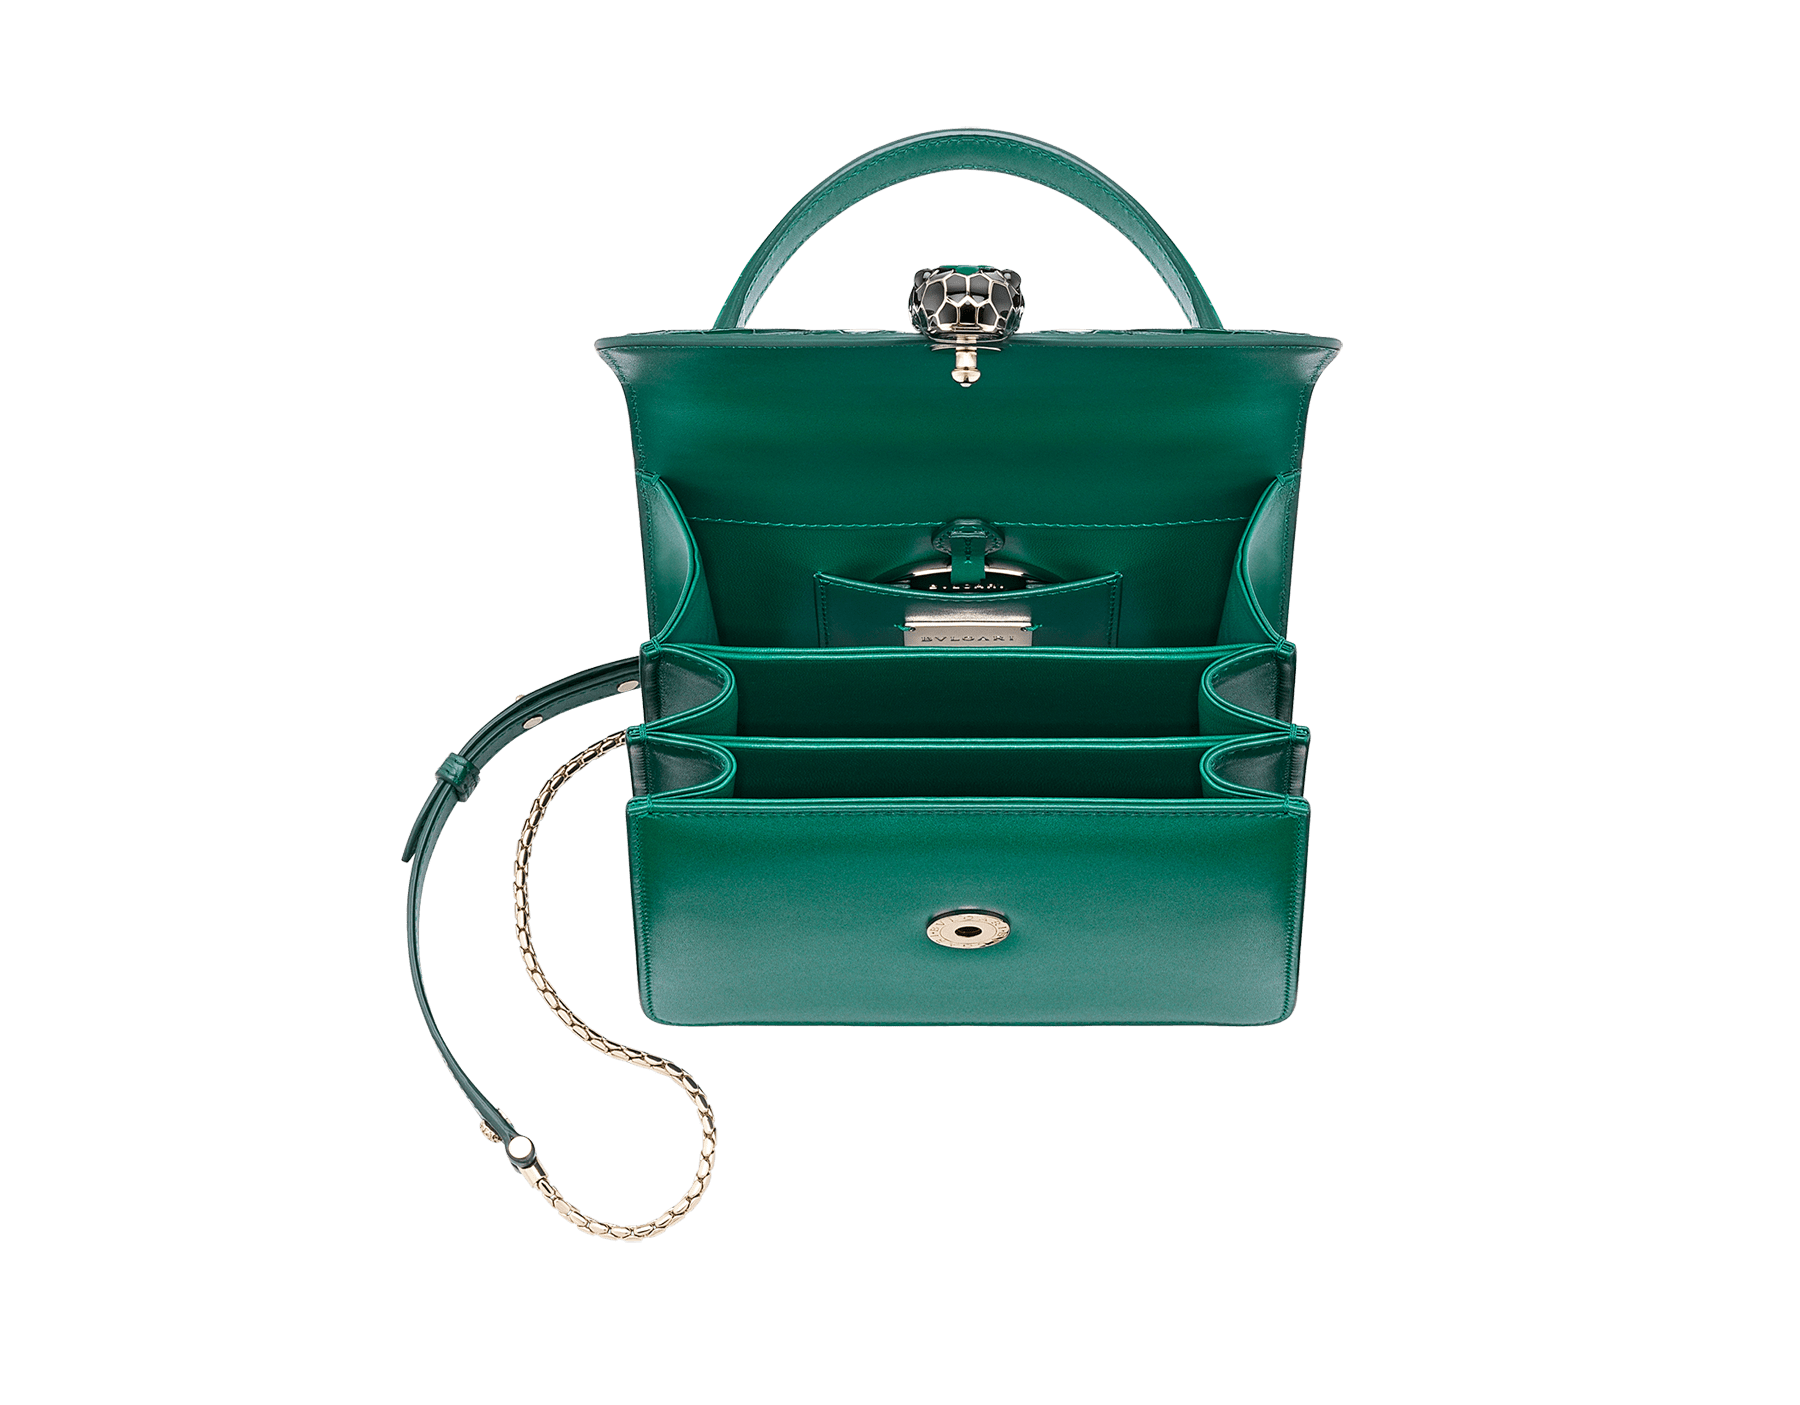 Serpenti Forever crossbody bag in sea star coral shiny croco skin and smooth calf leather. Snakehead closure in light gold plated brass decorated with black and white enamel, and green malachite eyes. 752-CLCR image 4